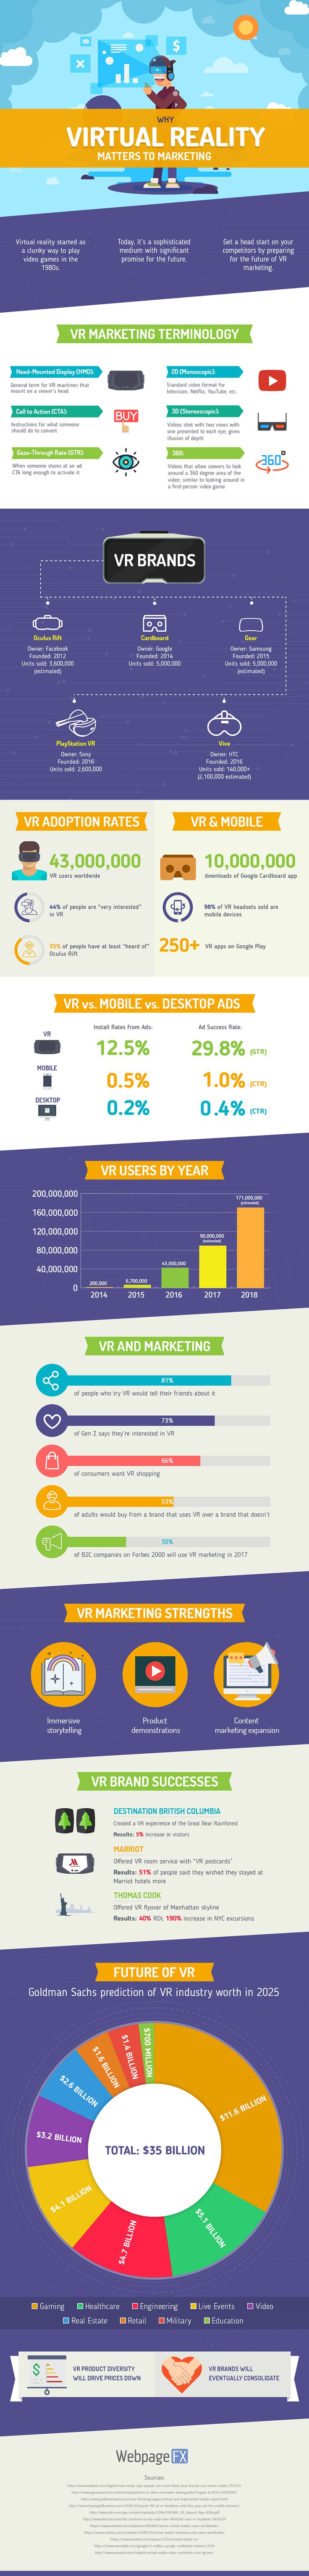 How will virtual reality change marketing? This new infographic provides an overview of the current state of play for VR and where things are headed